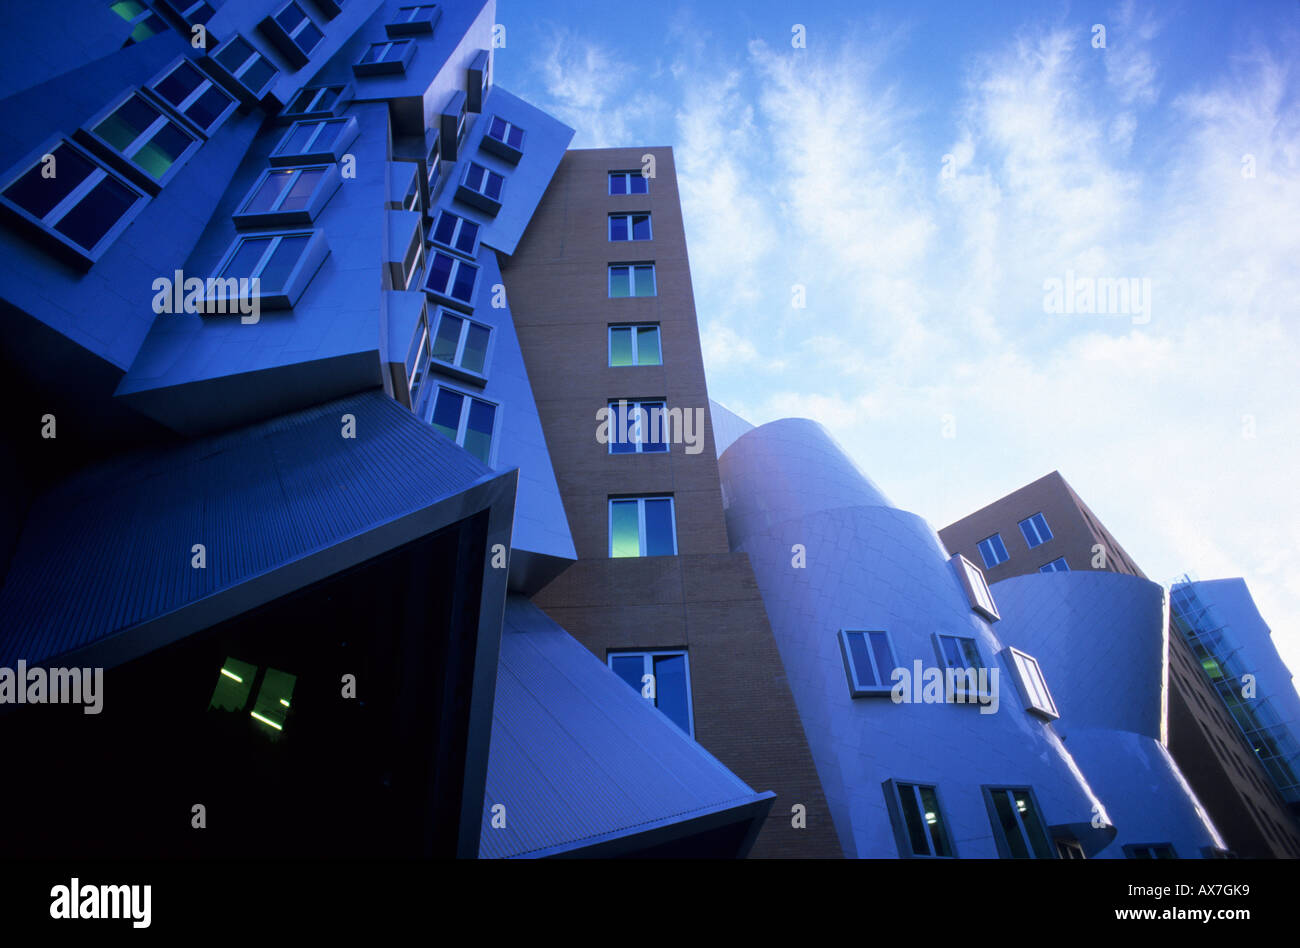 Stata Center at MIT, designed by Frank Gehry, Cambridge, Boston, Massachusetts, USA - Stock Image